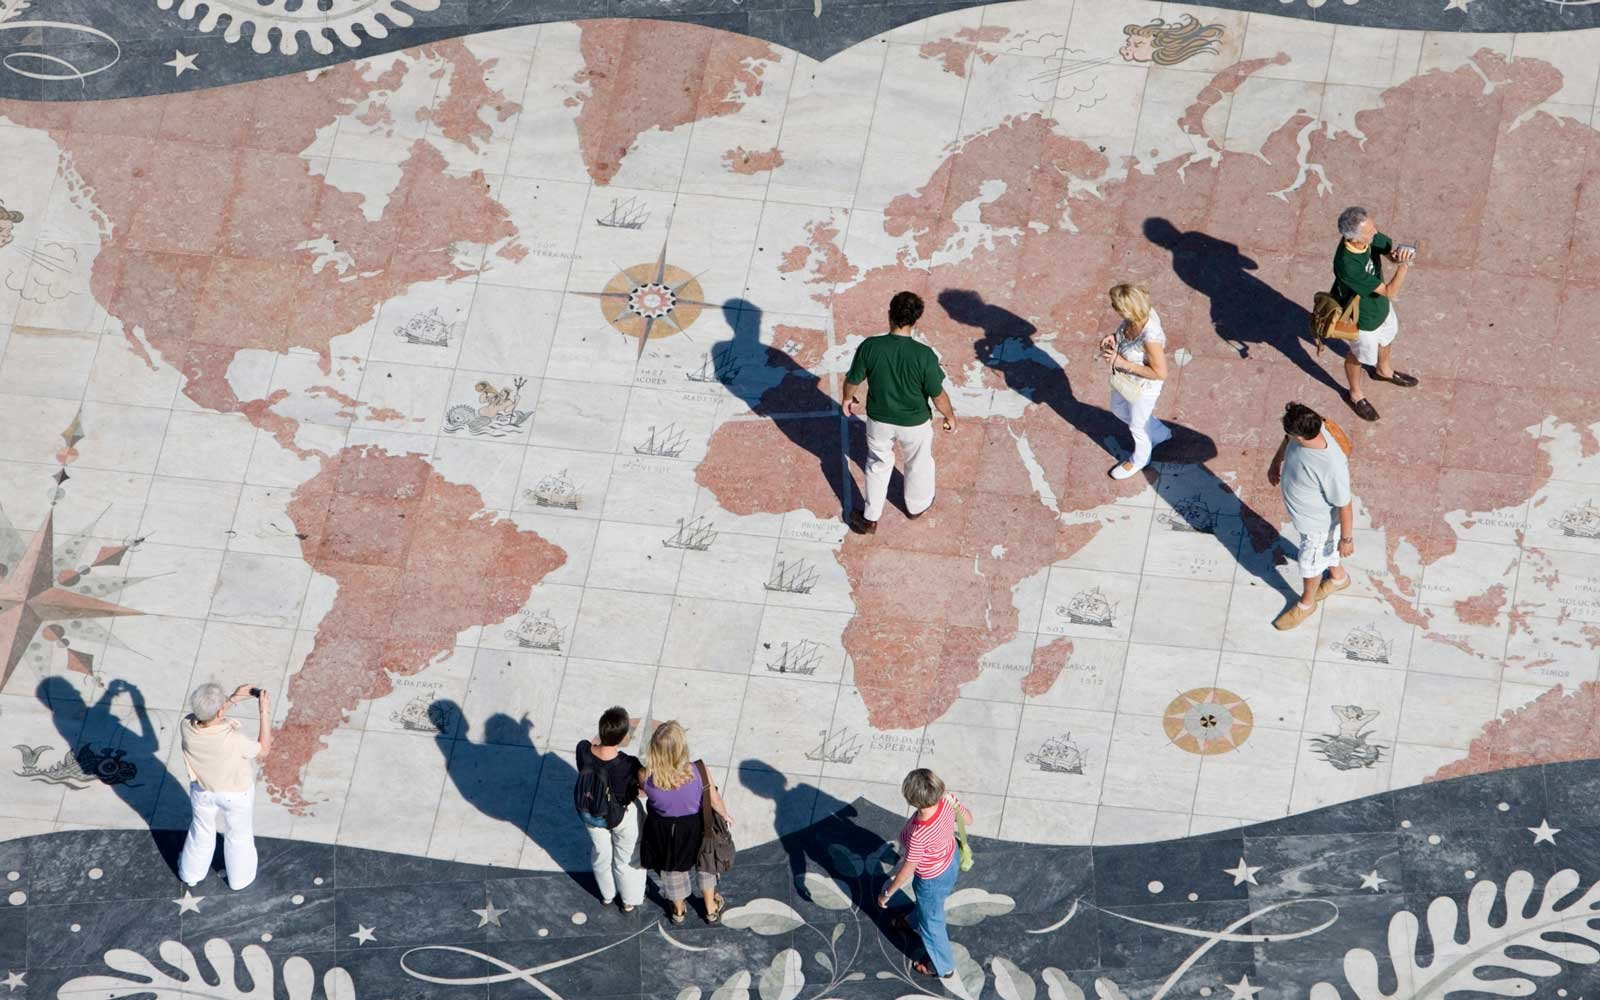 People on the World Mosaic Map